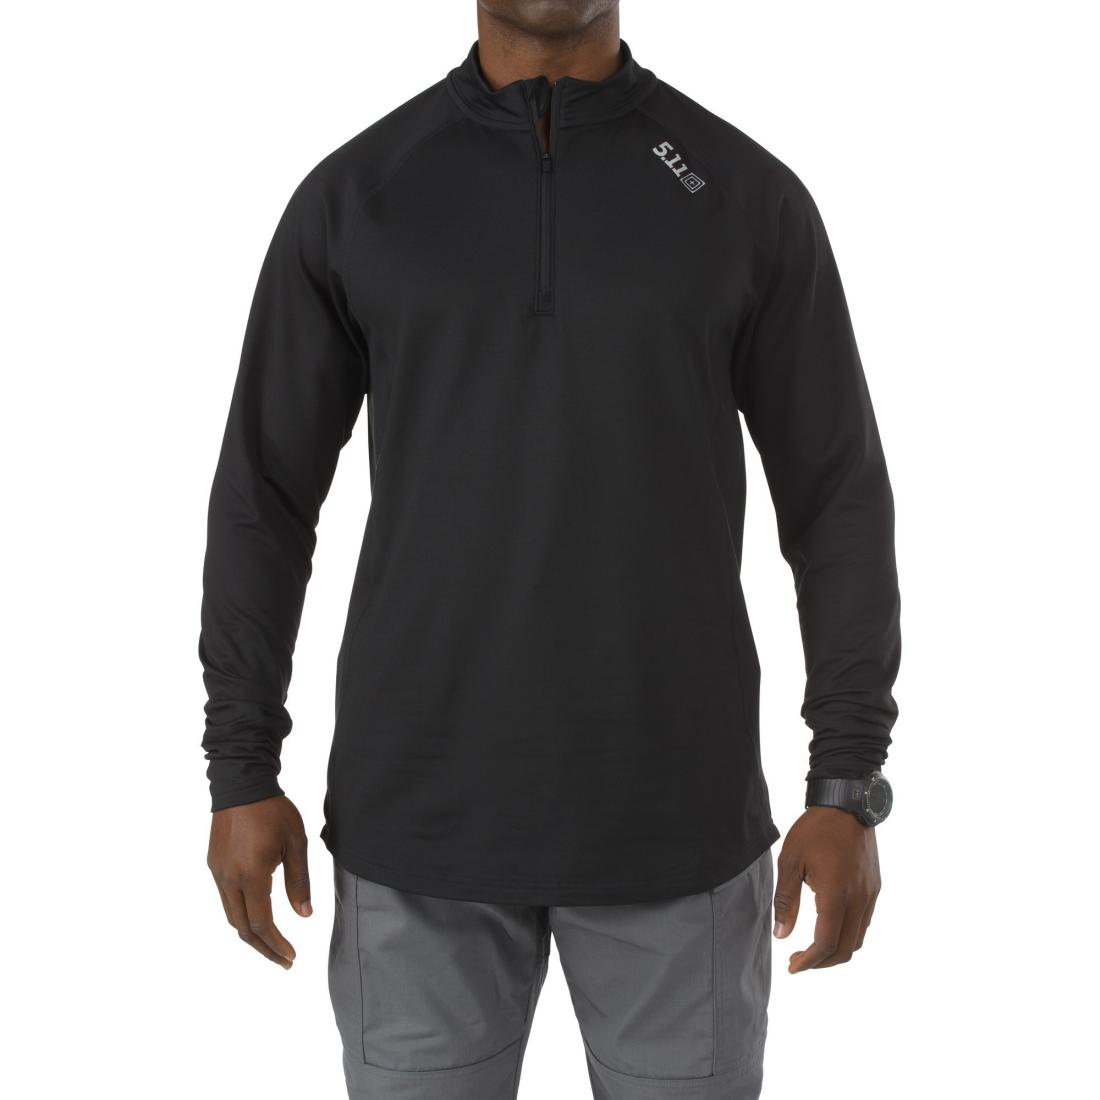 5.11 Tactical 40149 Men Sub Z Quarter Zip Black